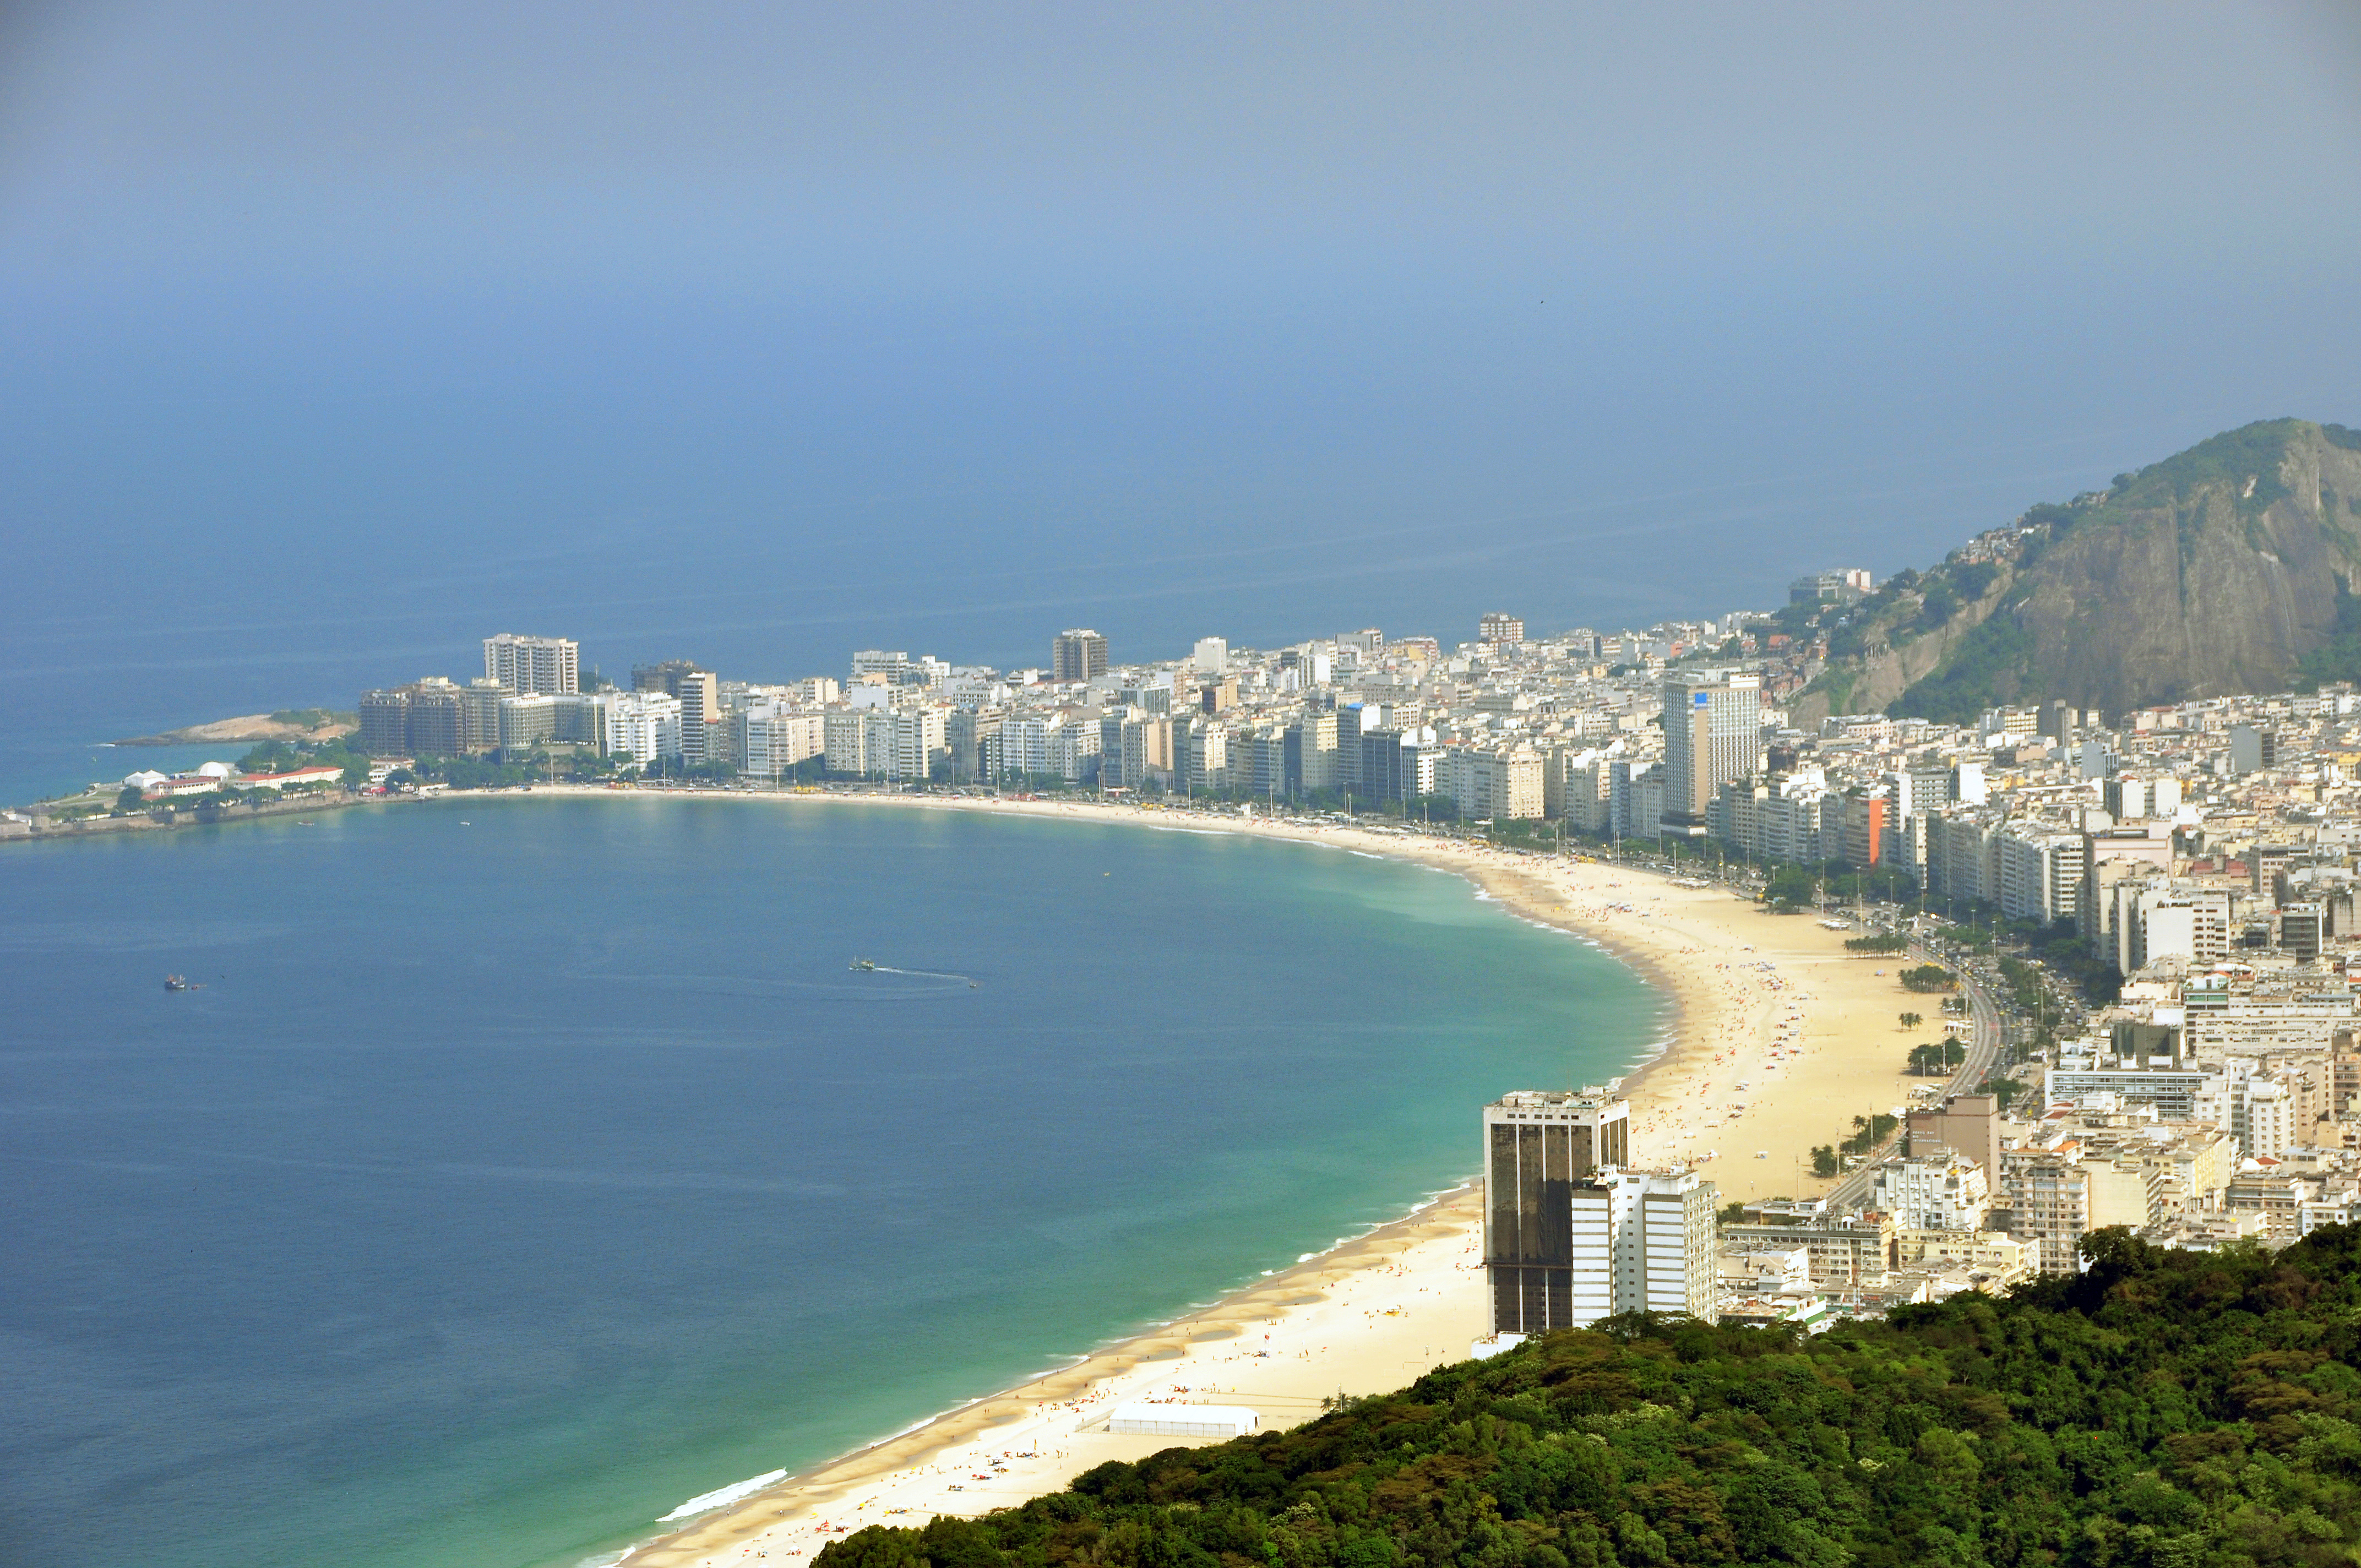 SEE: COPACABANA BEACH